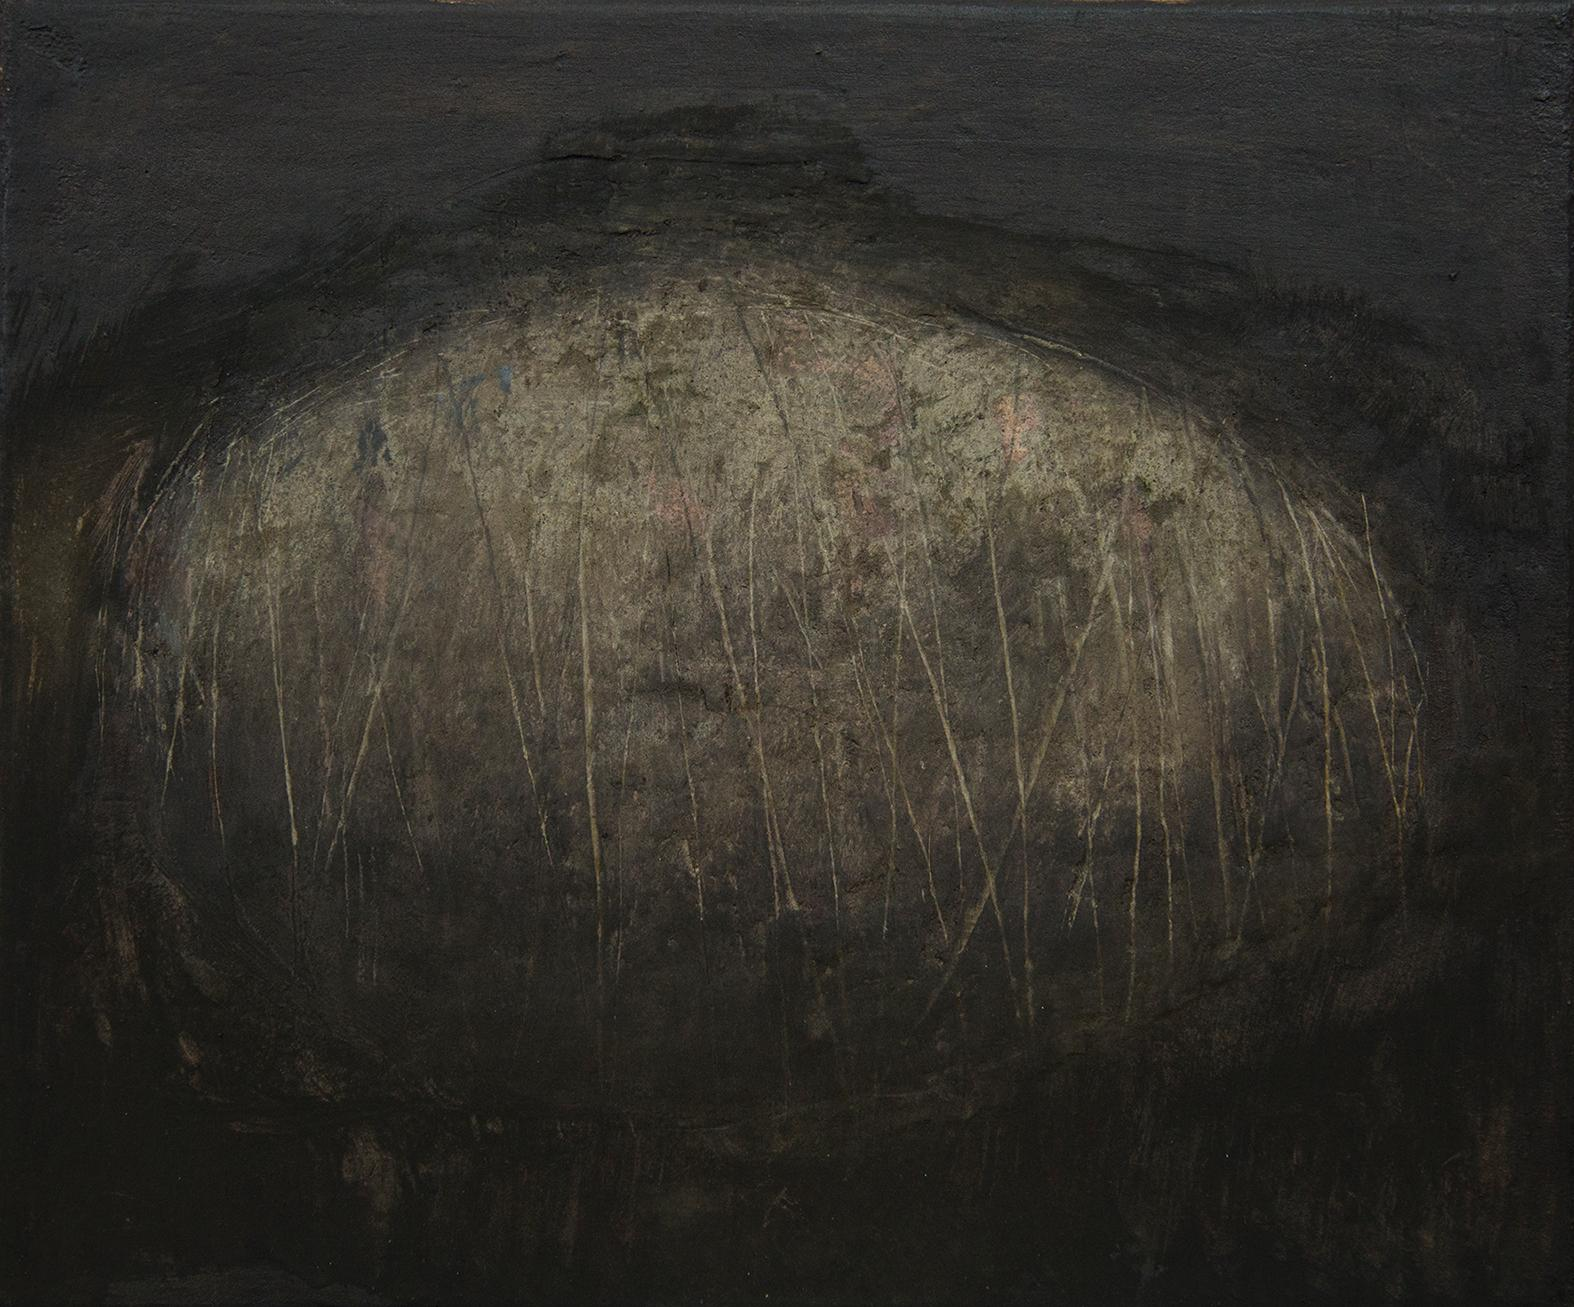 Untitled 1, from the Swath Series